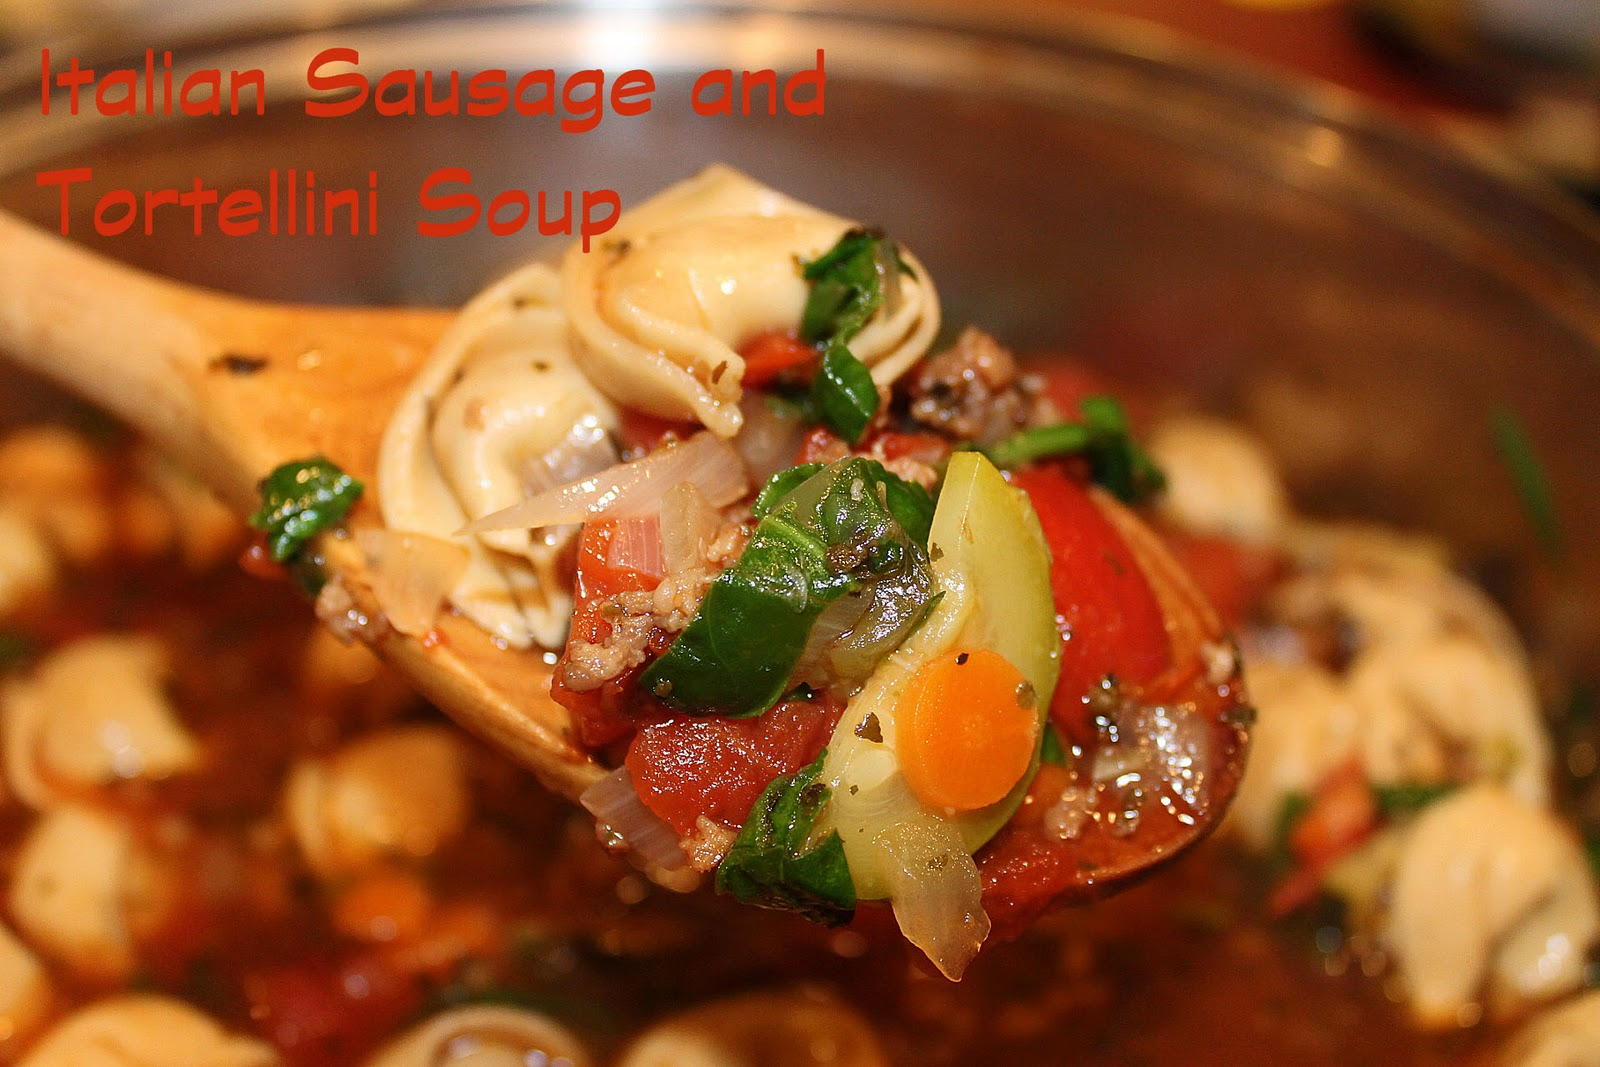 ... by Design: Italian Sausage and Tortellini Soup (Christmas Soup